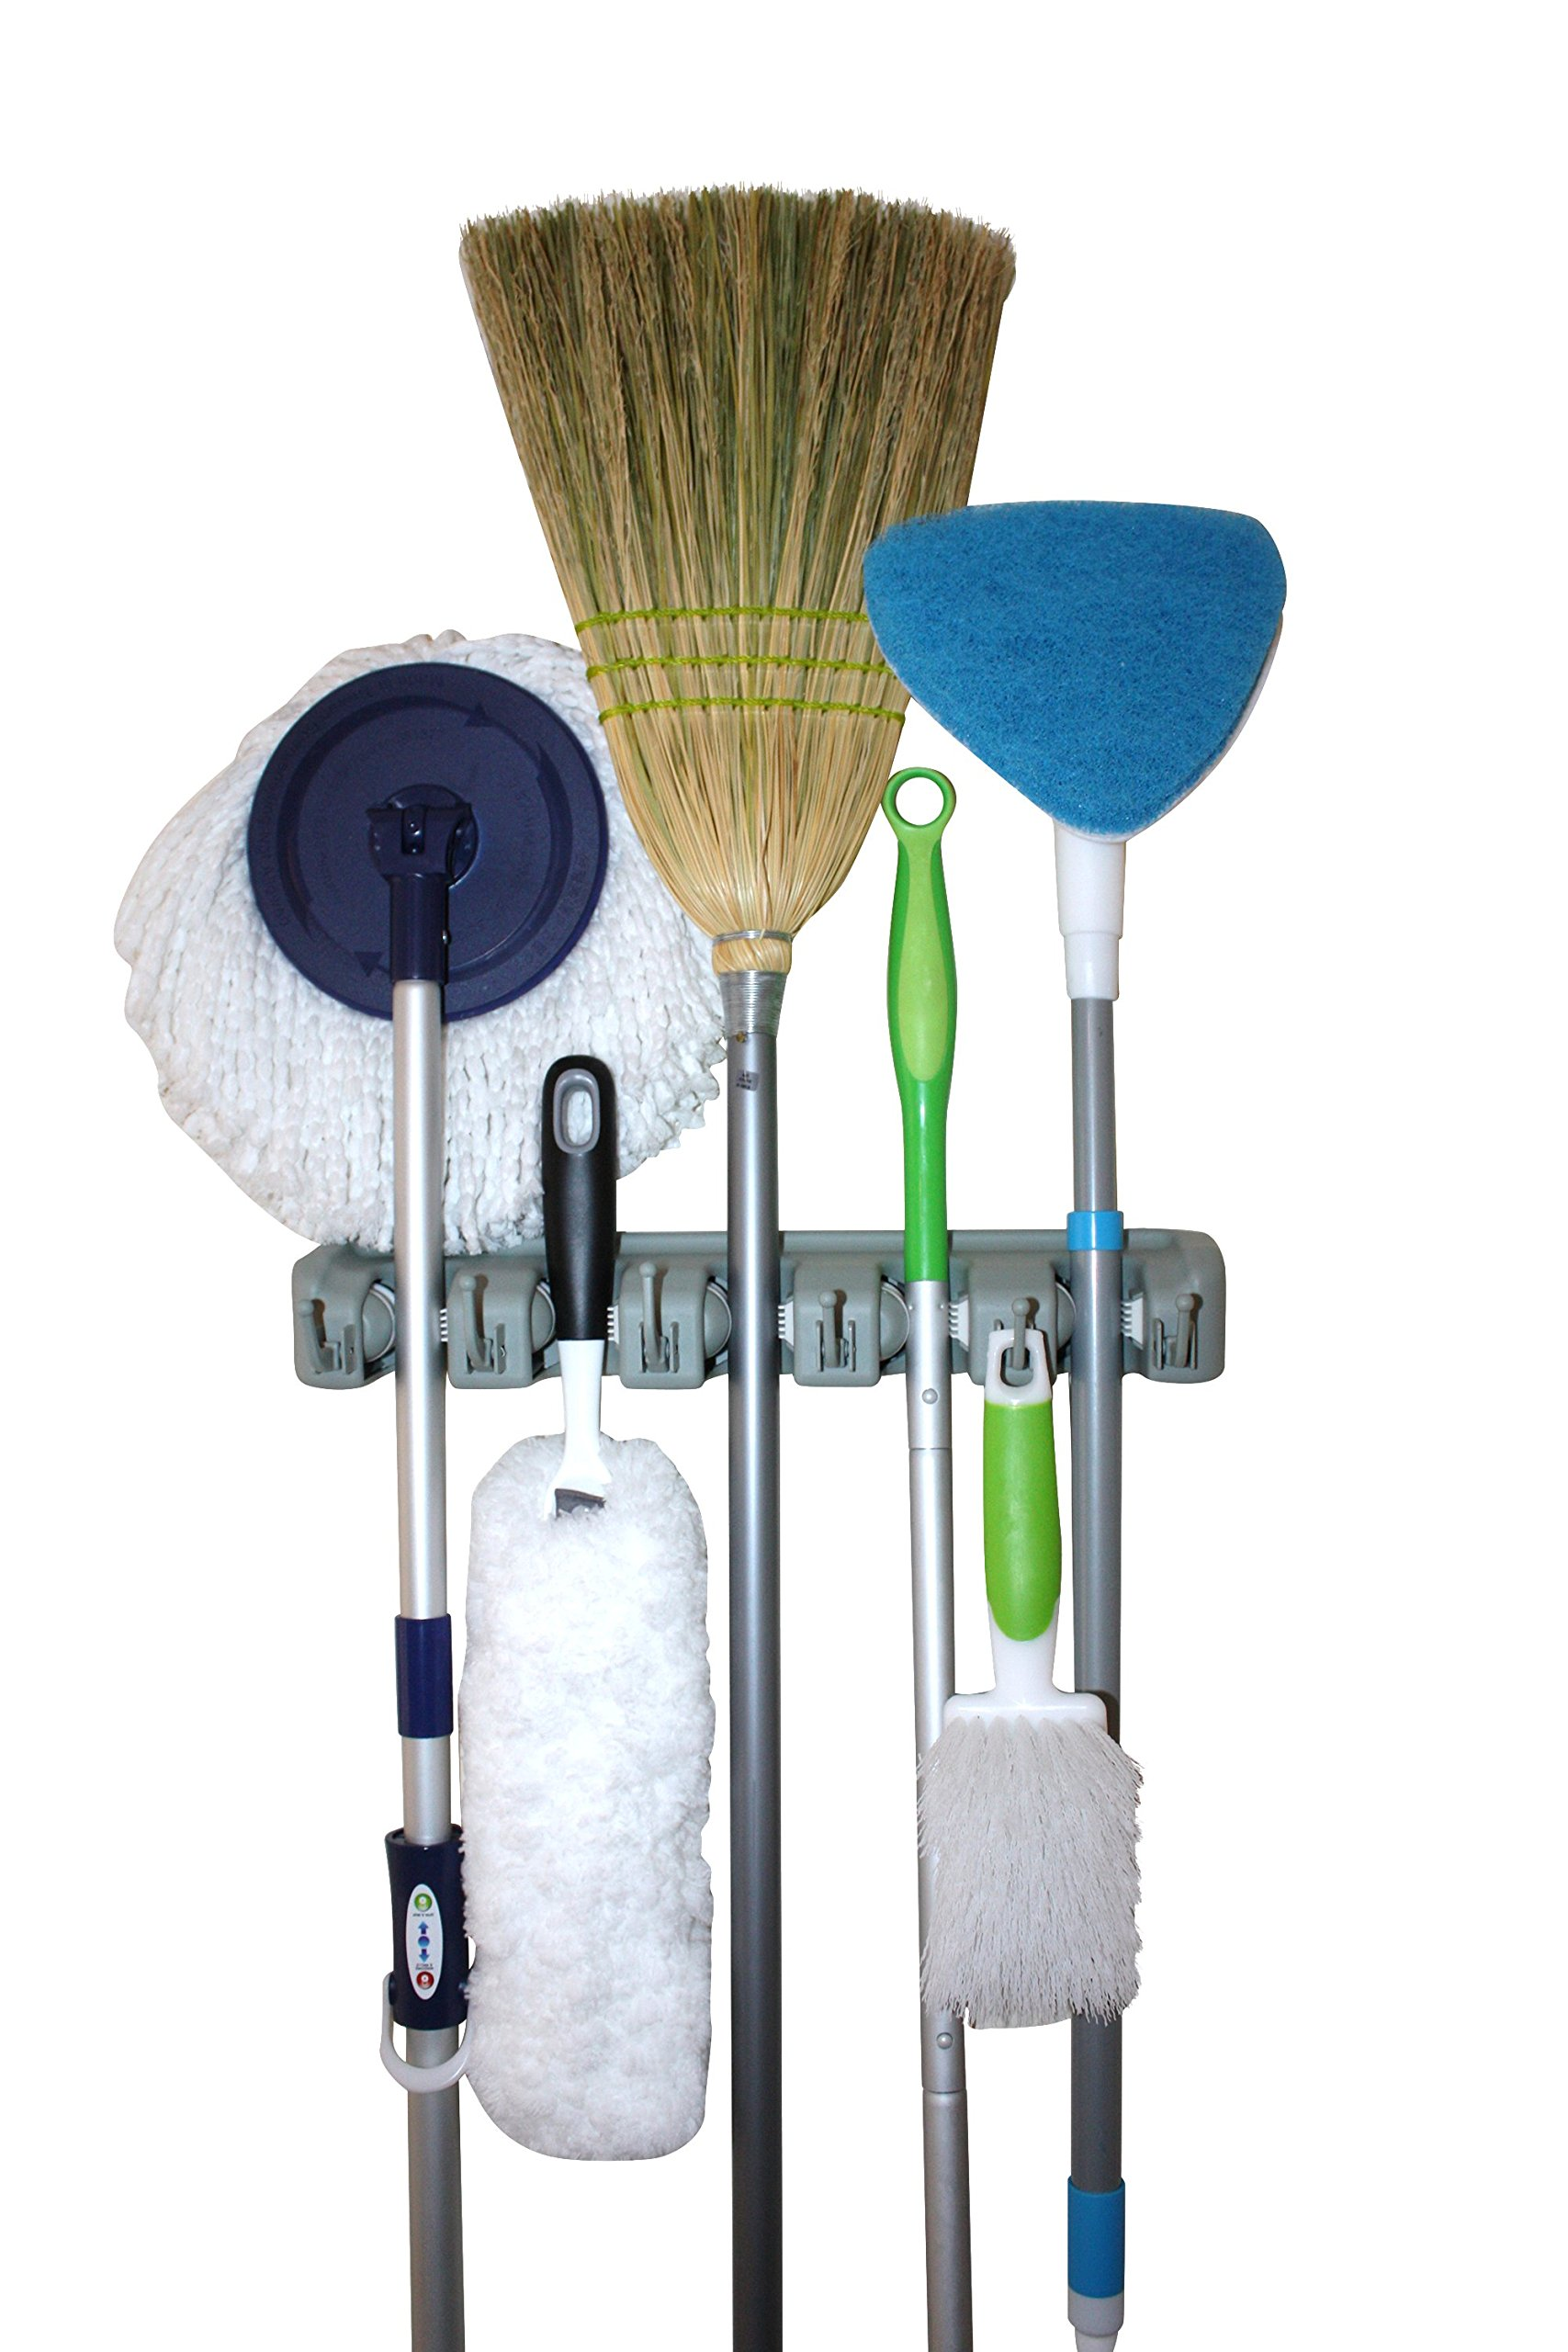 Twist and Shout Broom and Mop Holder and Tools Organizer with 5 Slots and 6 Hooks - Superior Dual Track White Rubber for Better Grips